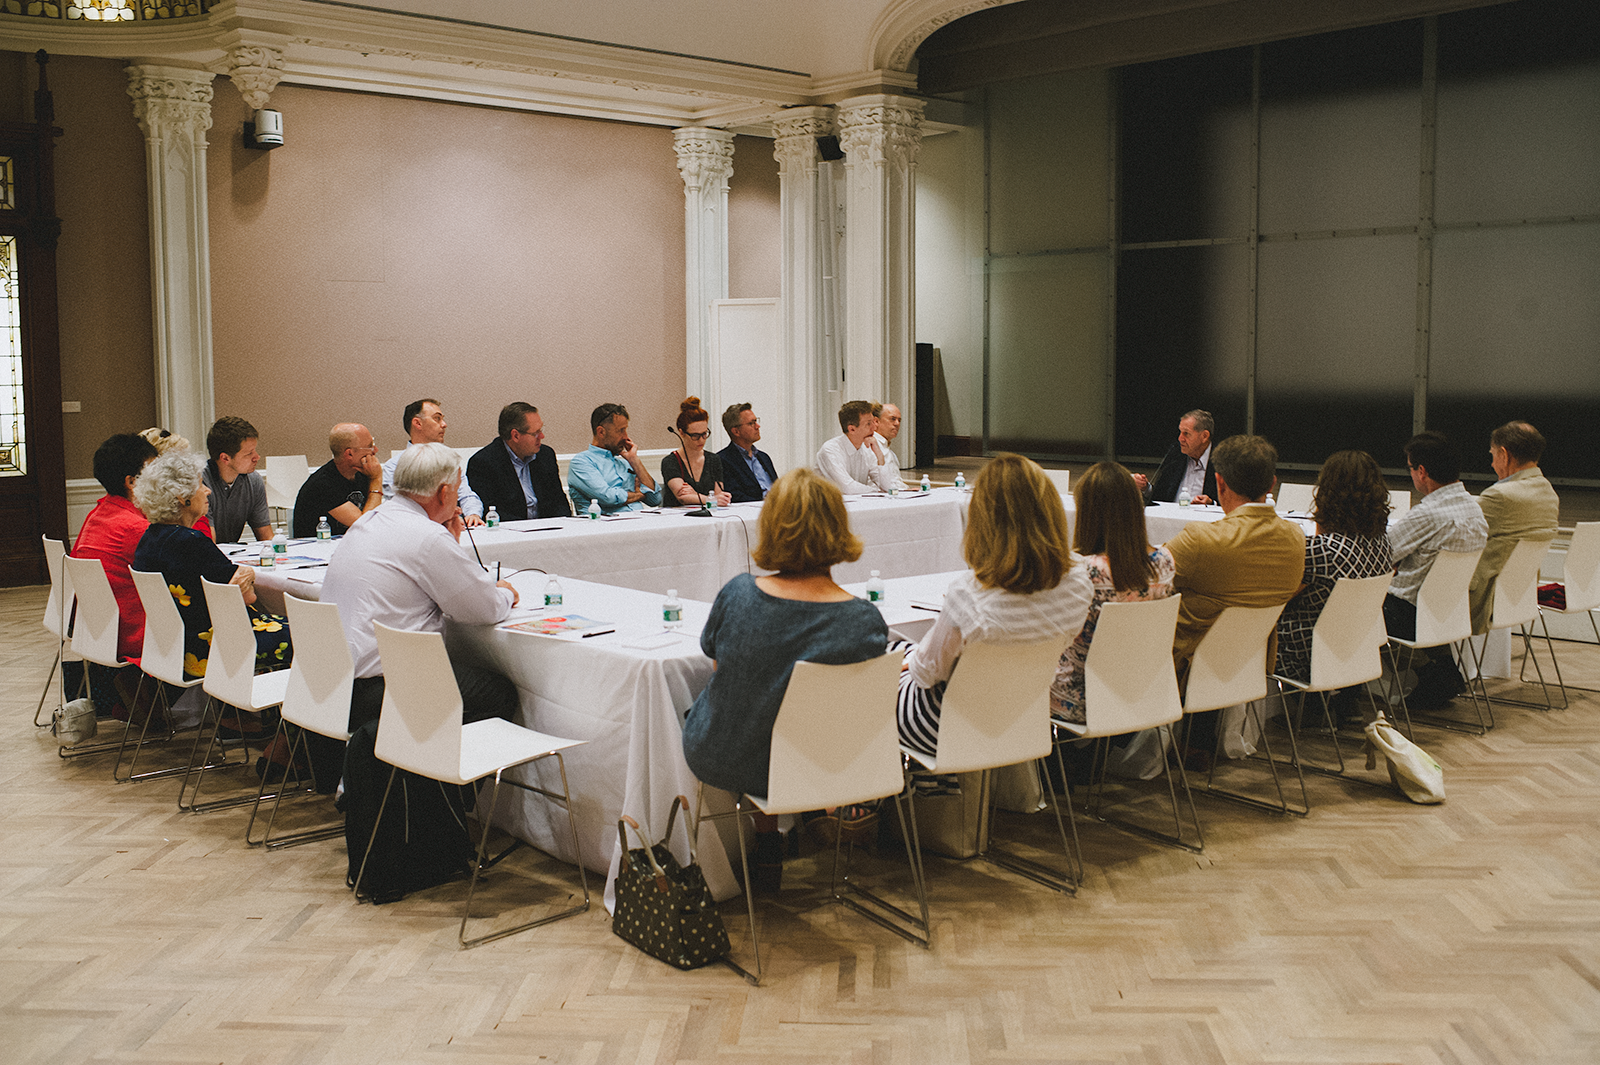 Members of the Executive and Advisory Boards meet with Morris Offit, former chairman of the Jewish Museum,located on the Upper East Side, NY.